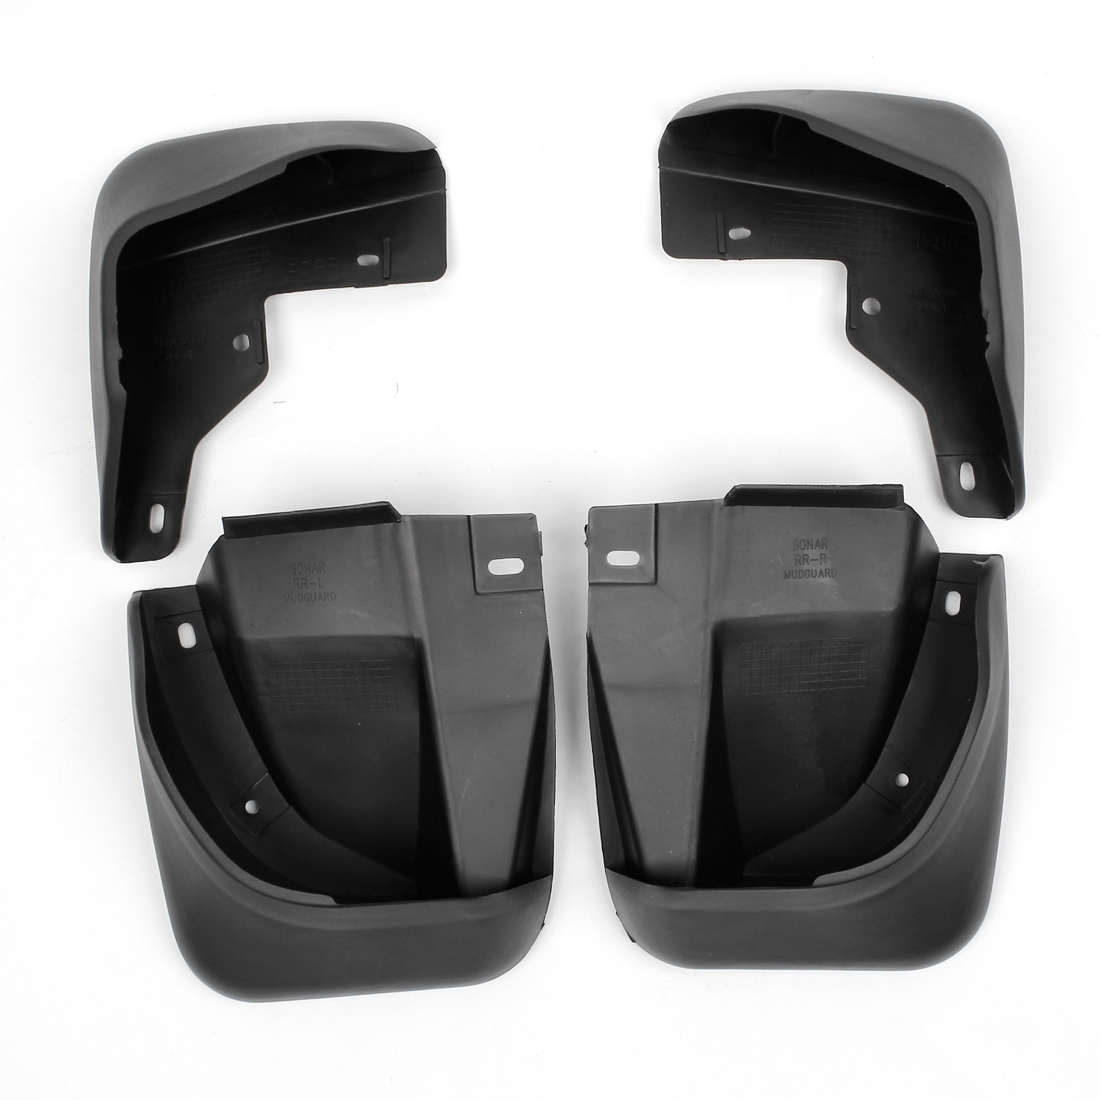 Unique Bargains 4 in 1 Splash Guards Front Rear Mud Flaps Protectors Set for Honda Accord 2.3